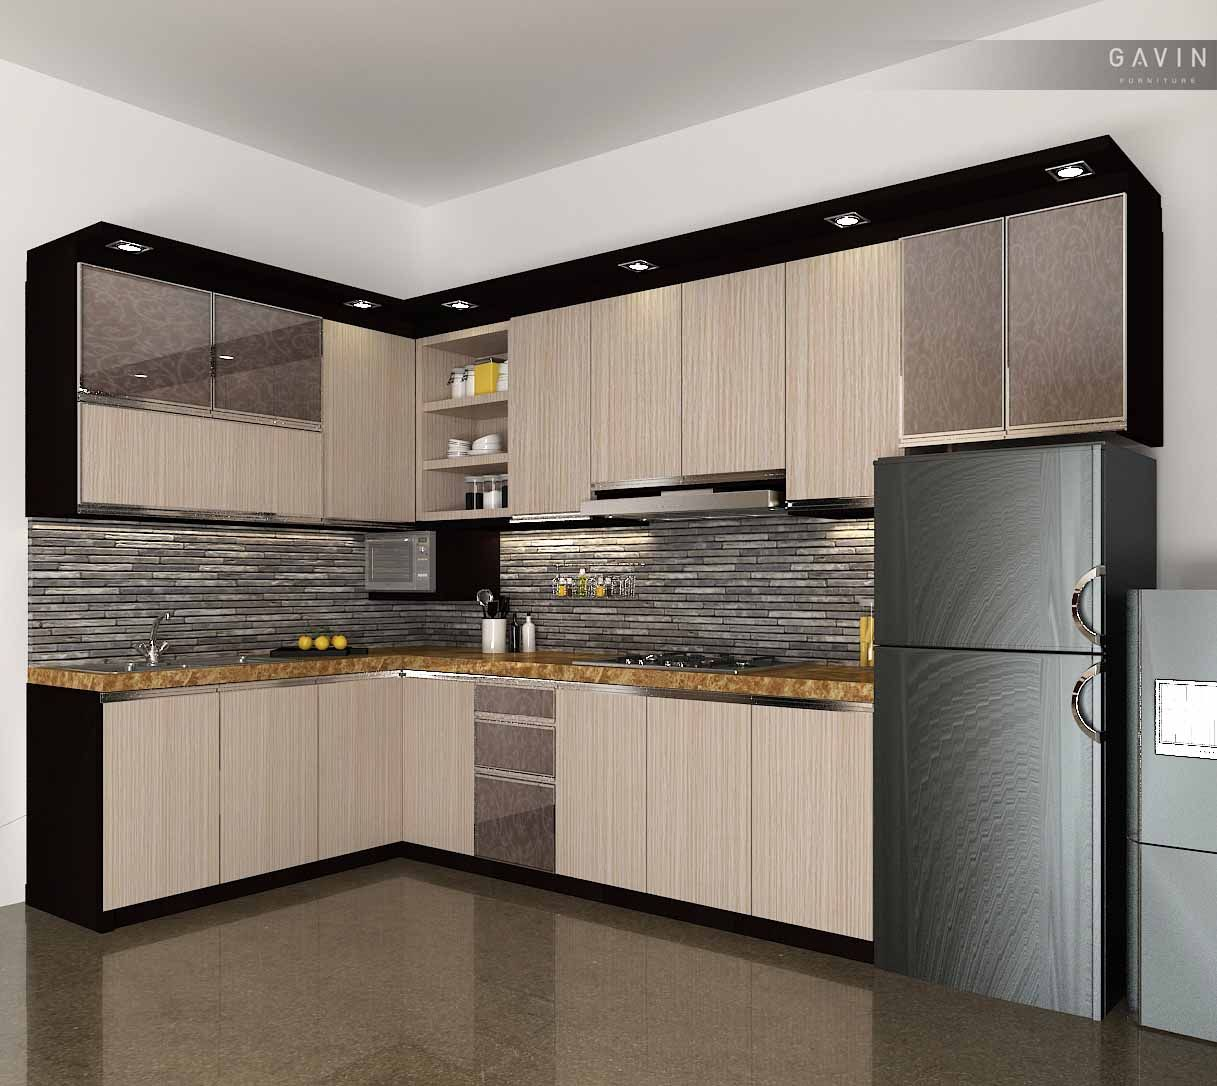 Desain Kitchen Set Minimalis Hpl Di Kemanggisan Kitchen Set